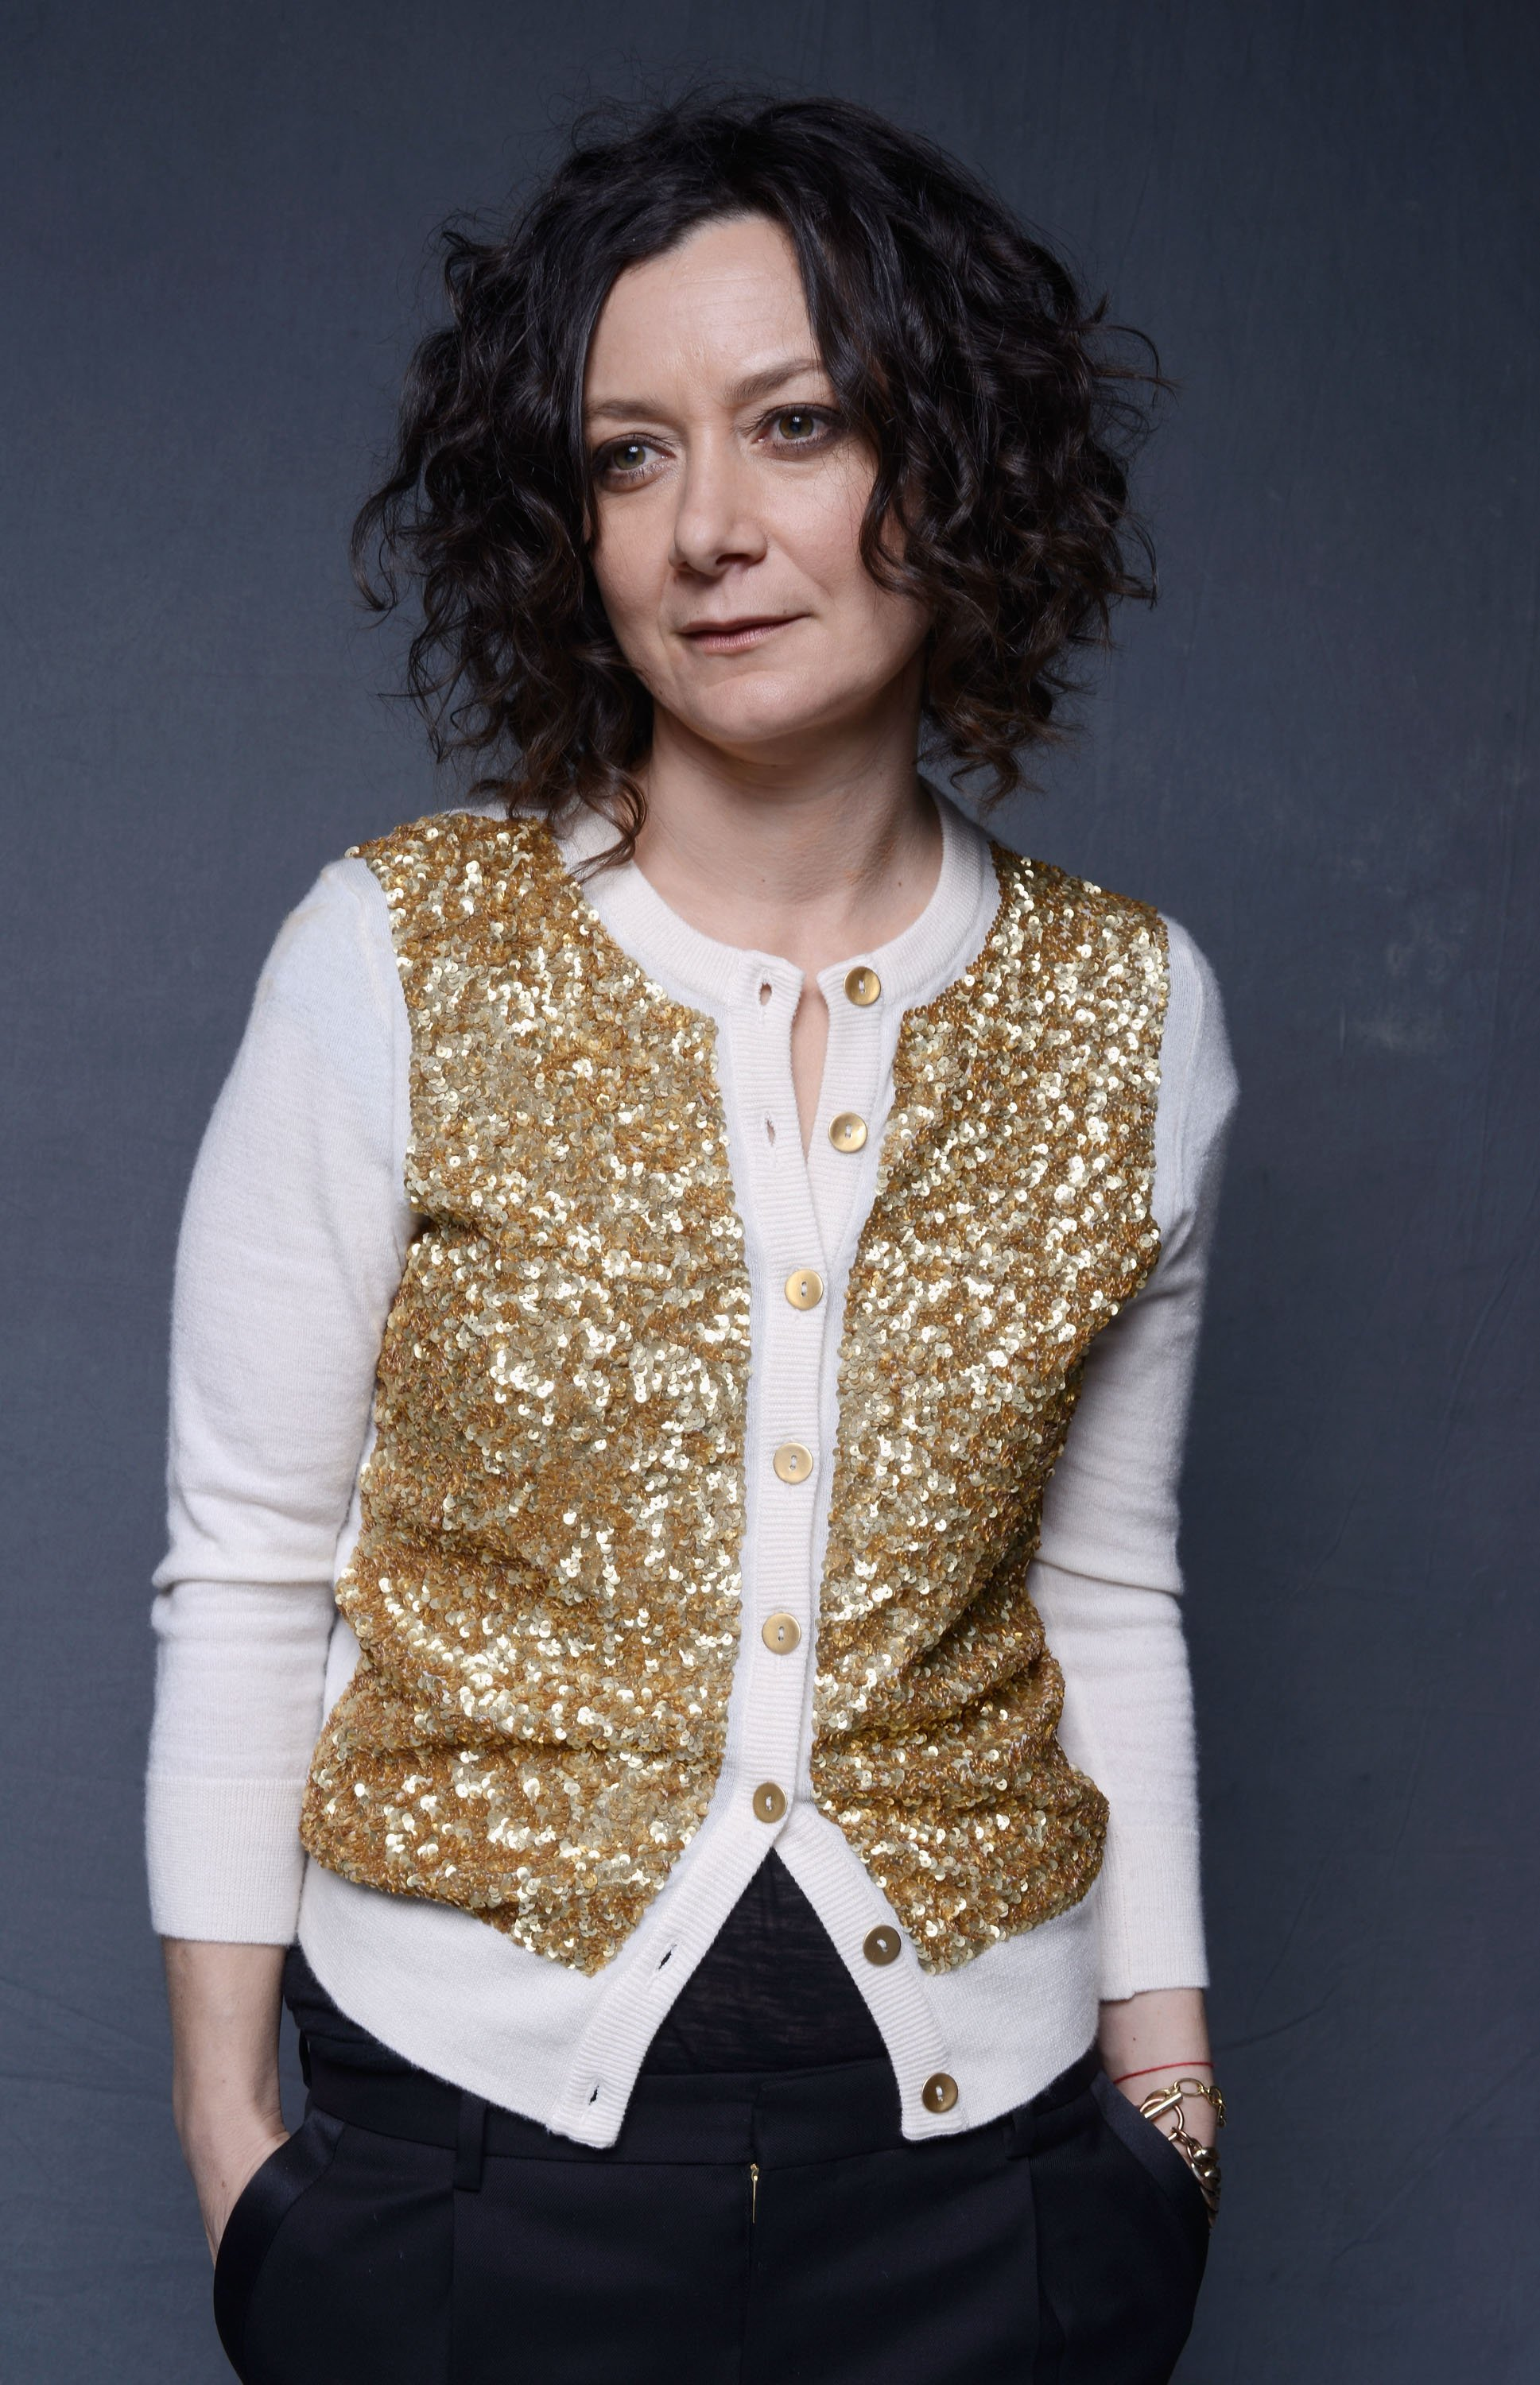 Sara Gilbert poses for a Wonderwall portrait at The Art of Elysium's 7th Annual HEAVEN Gala on January 11, 2014, in Los Angeles, California. | Source: Getty Images.